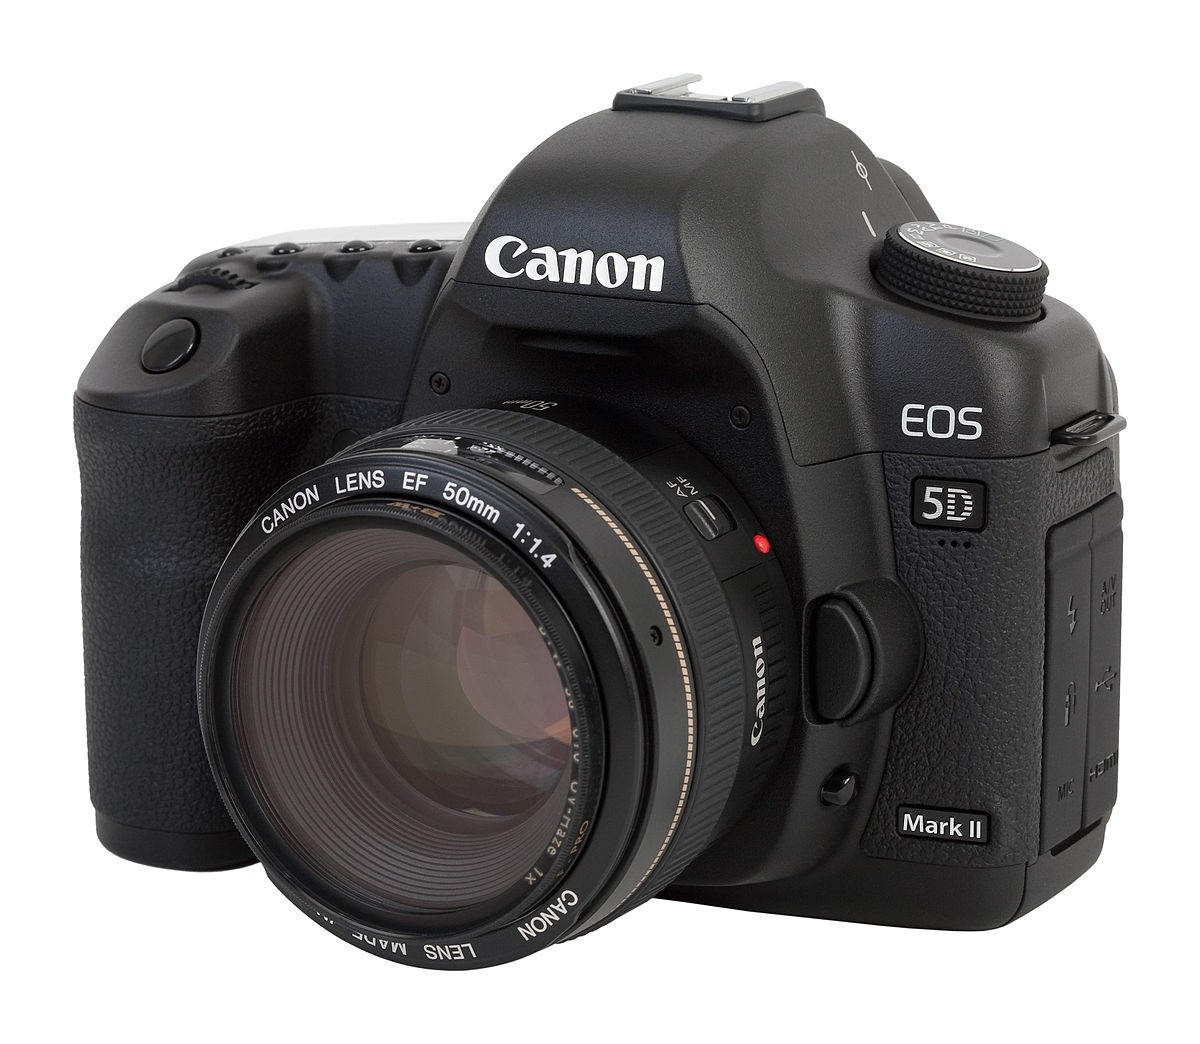 Canon EOS 5D Mark II - Wikipedia